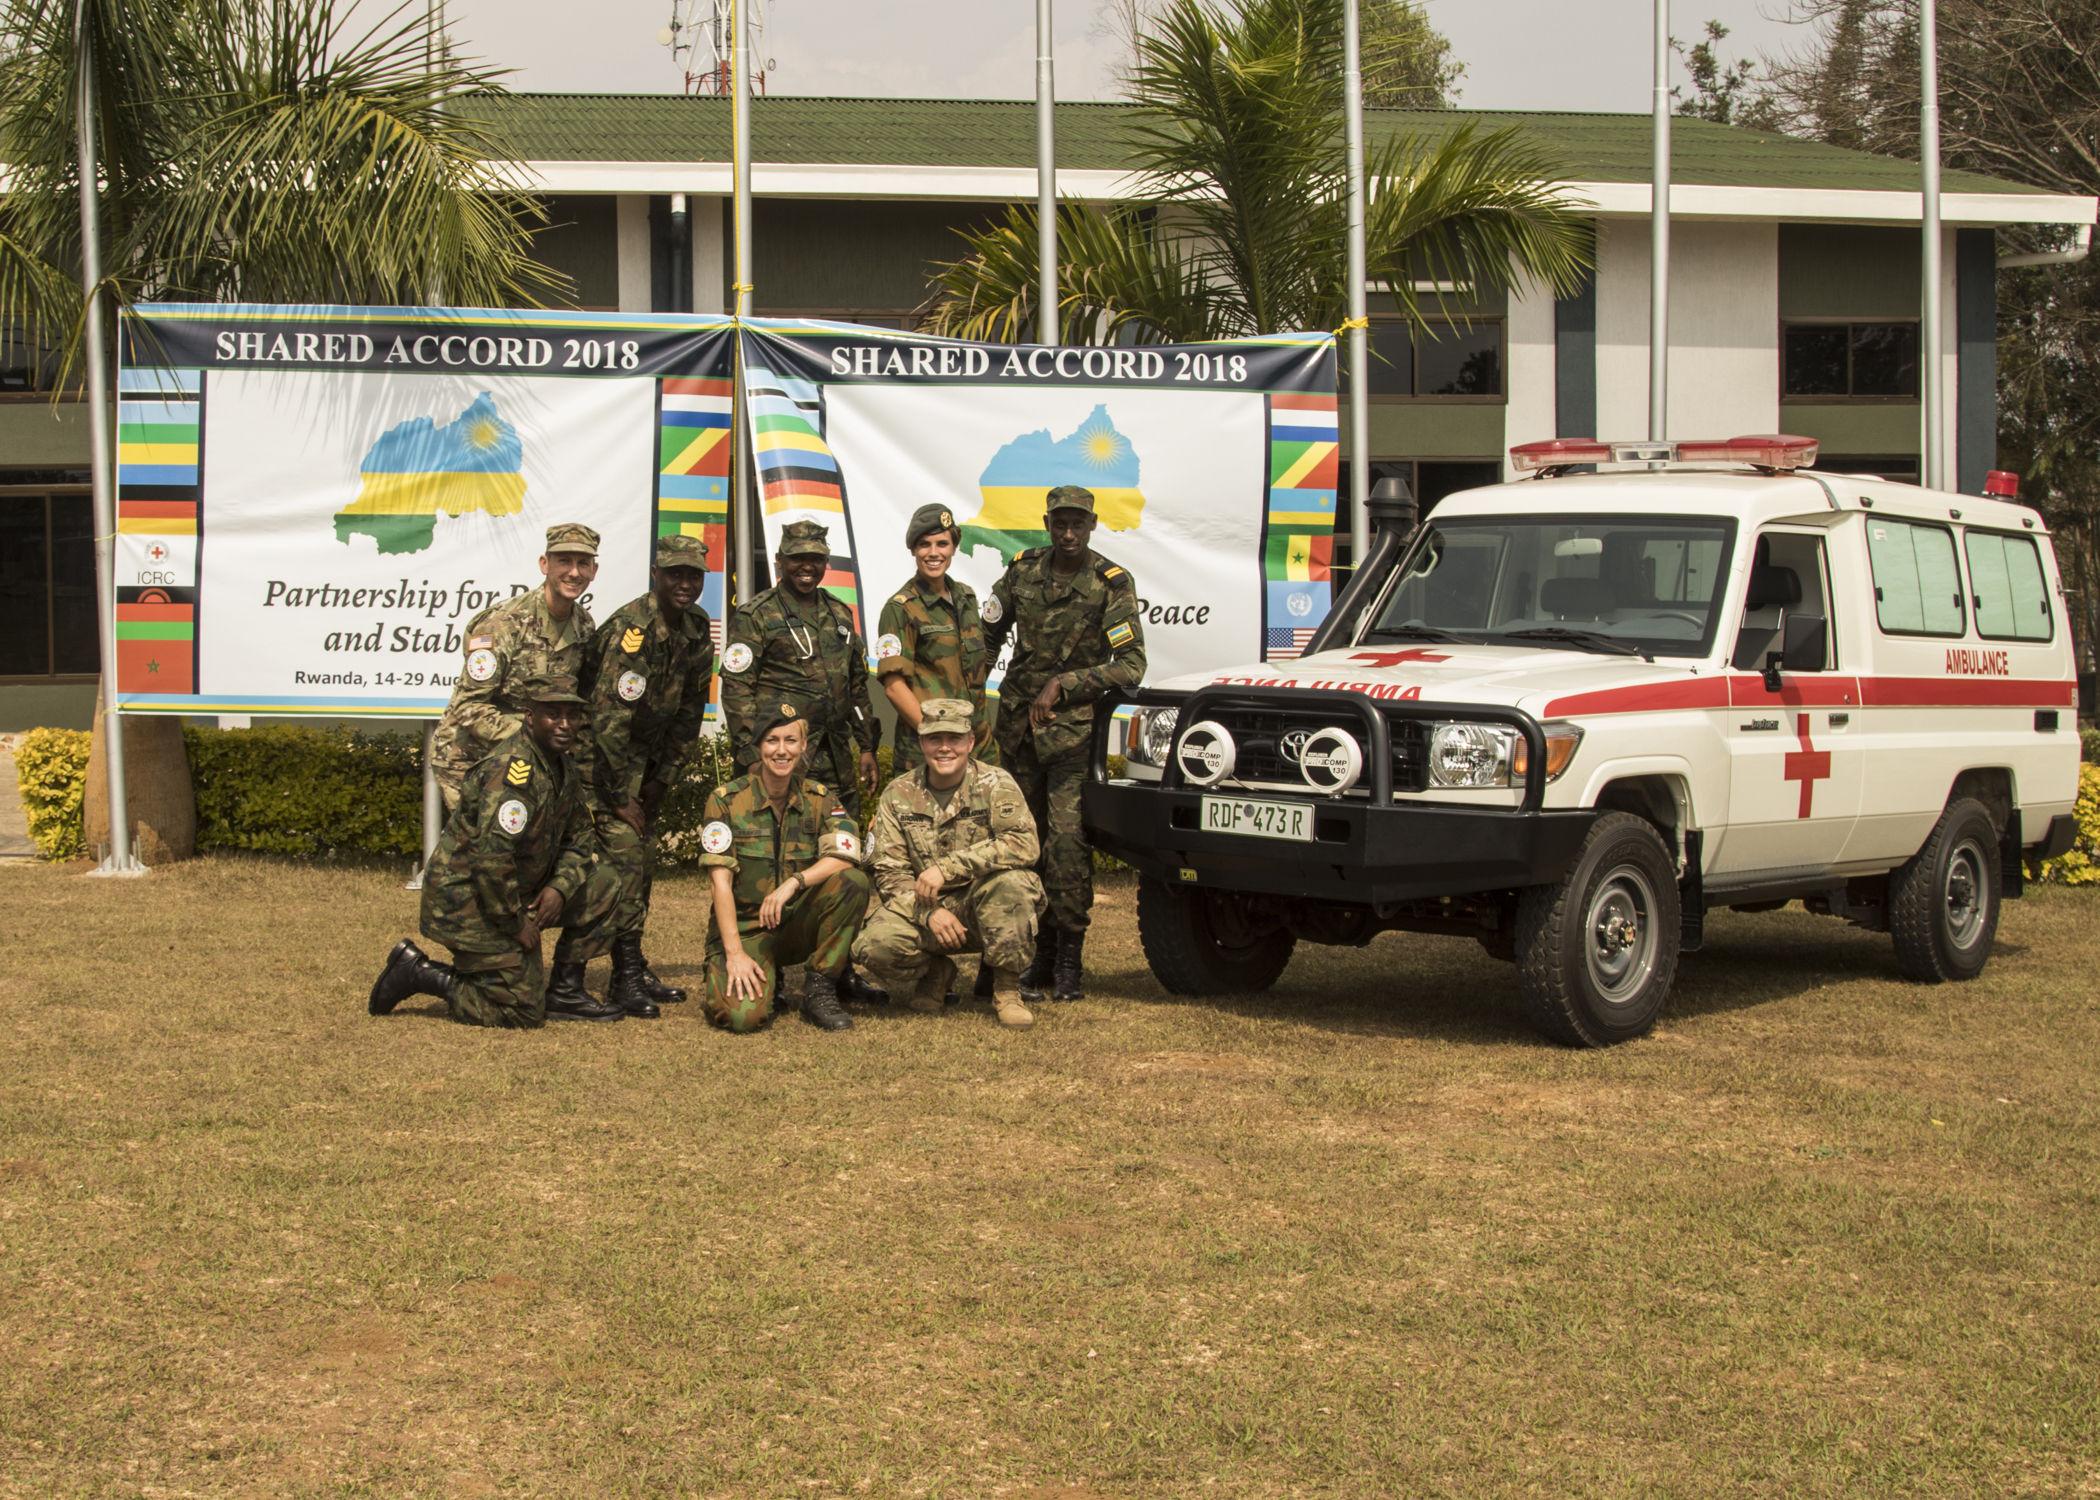 Medical teams from the Rwanda Defence Force, U.S. Army Africa, and the Royal Netherlands Army supporting Shared Accord 2018 pose for a group photo.  Shared Accord is a multilateral exercise intended to enhance U.S. and African forces capabilities to perform peacekeeping operations in support of United Nations and African Union mandates, while shaping the security environment, and deterring violent extremist organizations.  (U.S. Army photo by Sgt. Jennifer Garza, U.S. Army Africa/RELEASED)